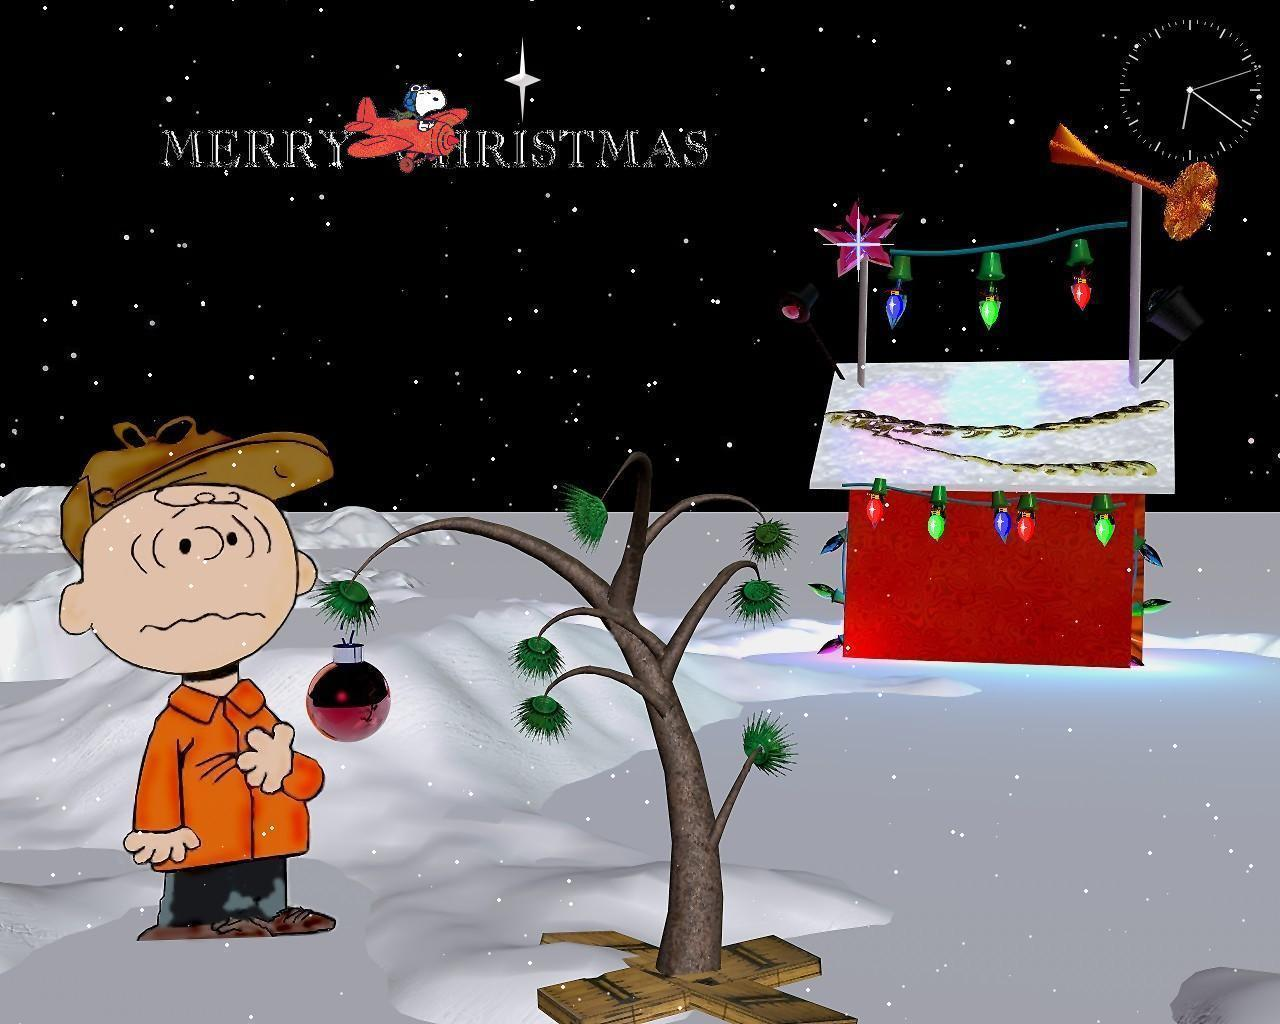 free charlie brown wallpapers wallpaper cave